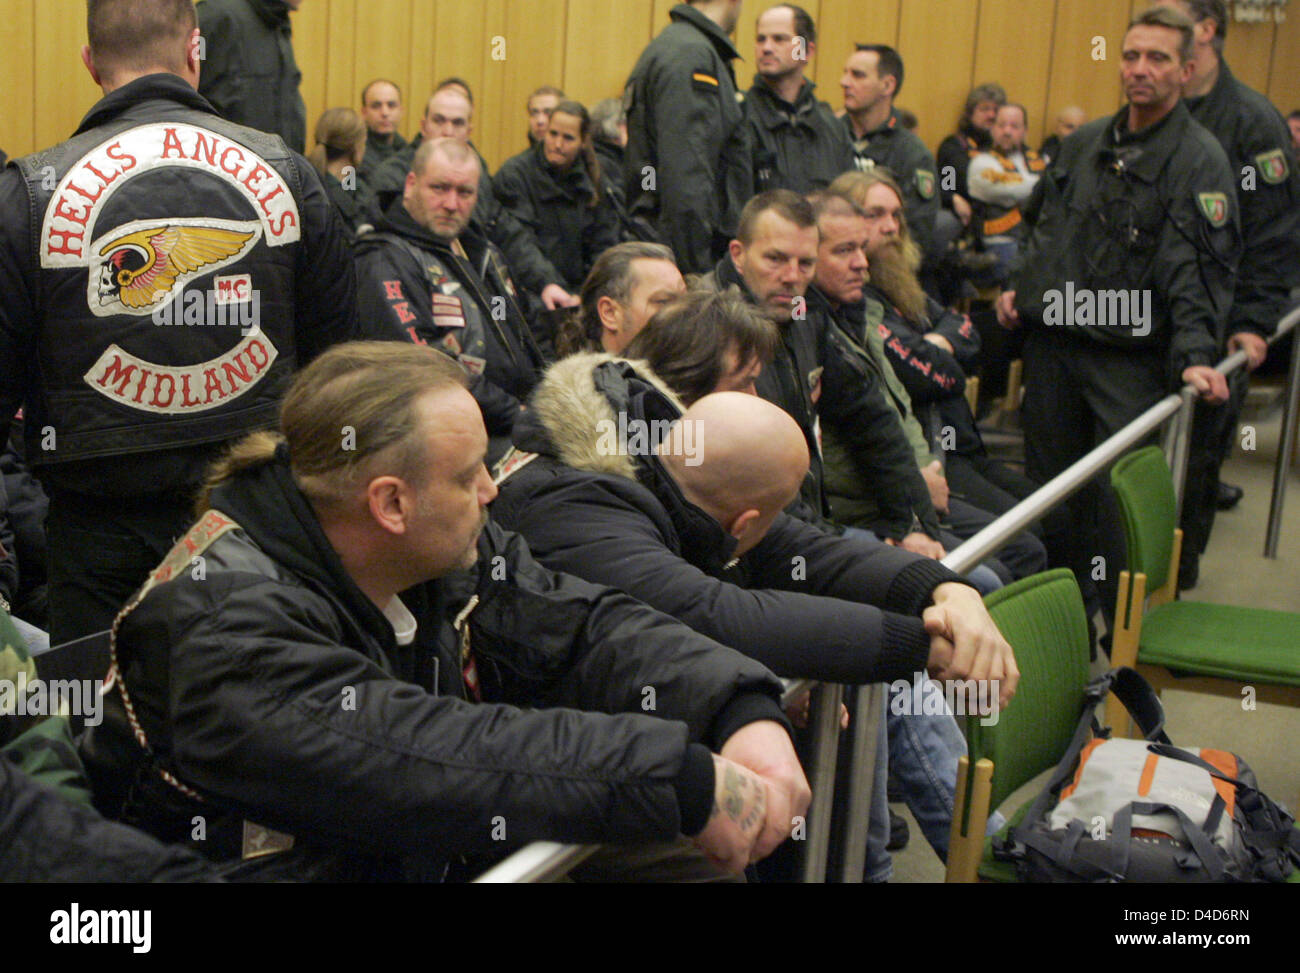 Members of motorcycle clubs 'Hells Angels' and 'Bandidos